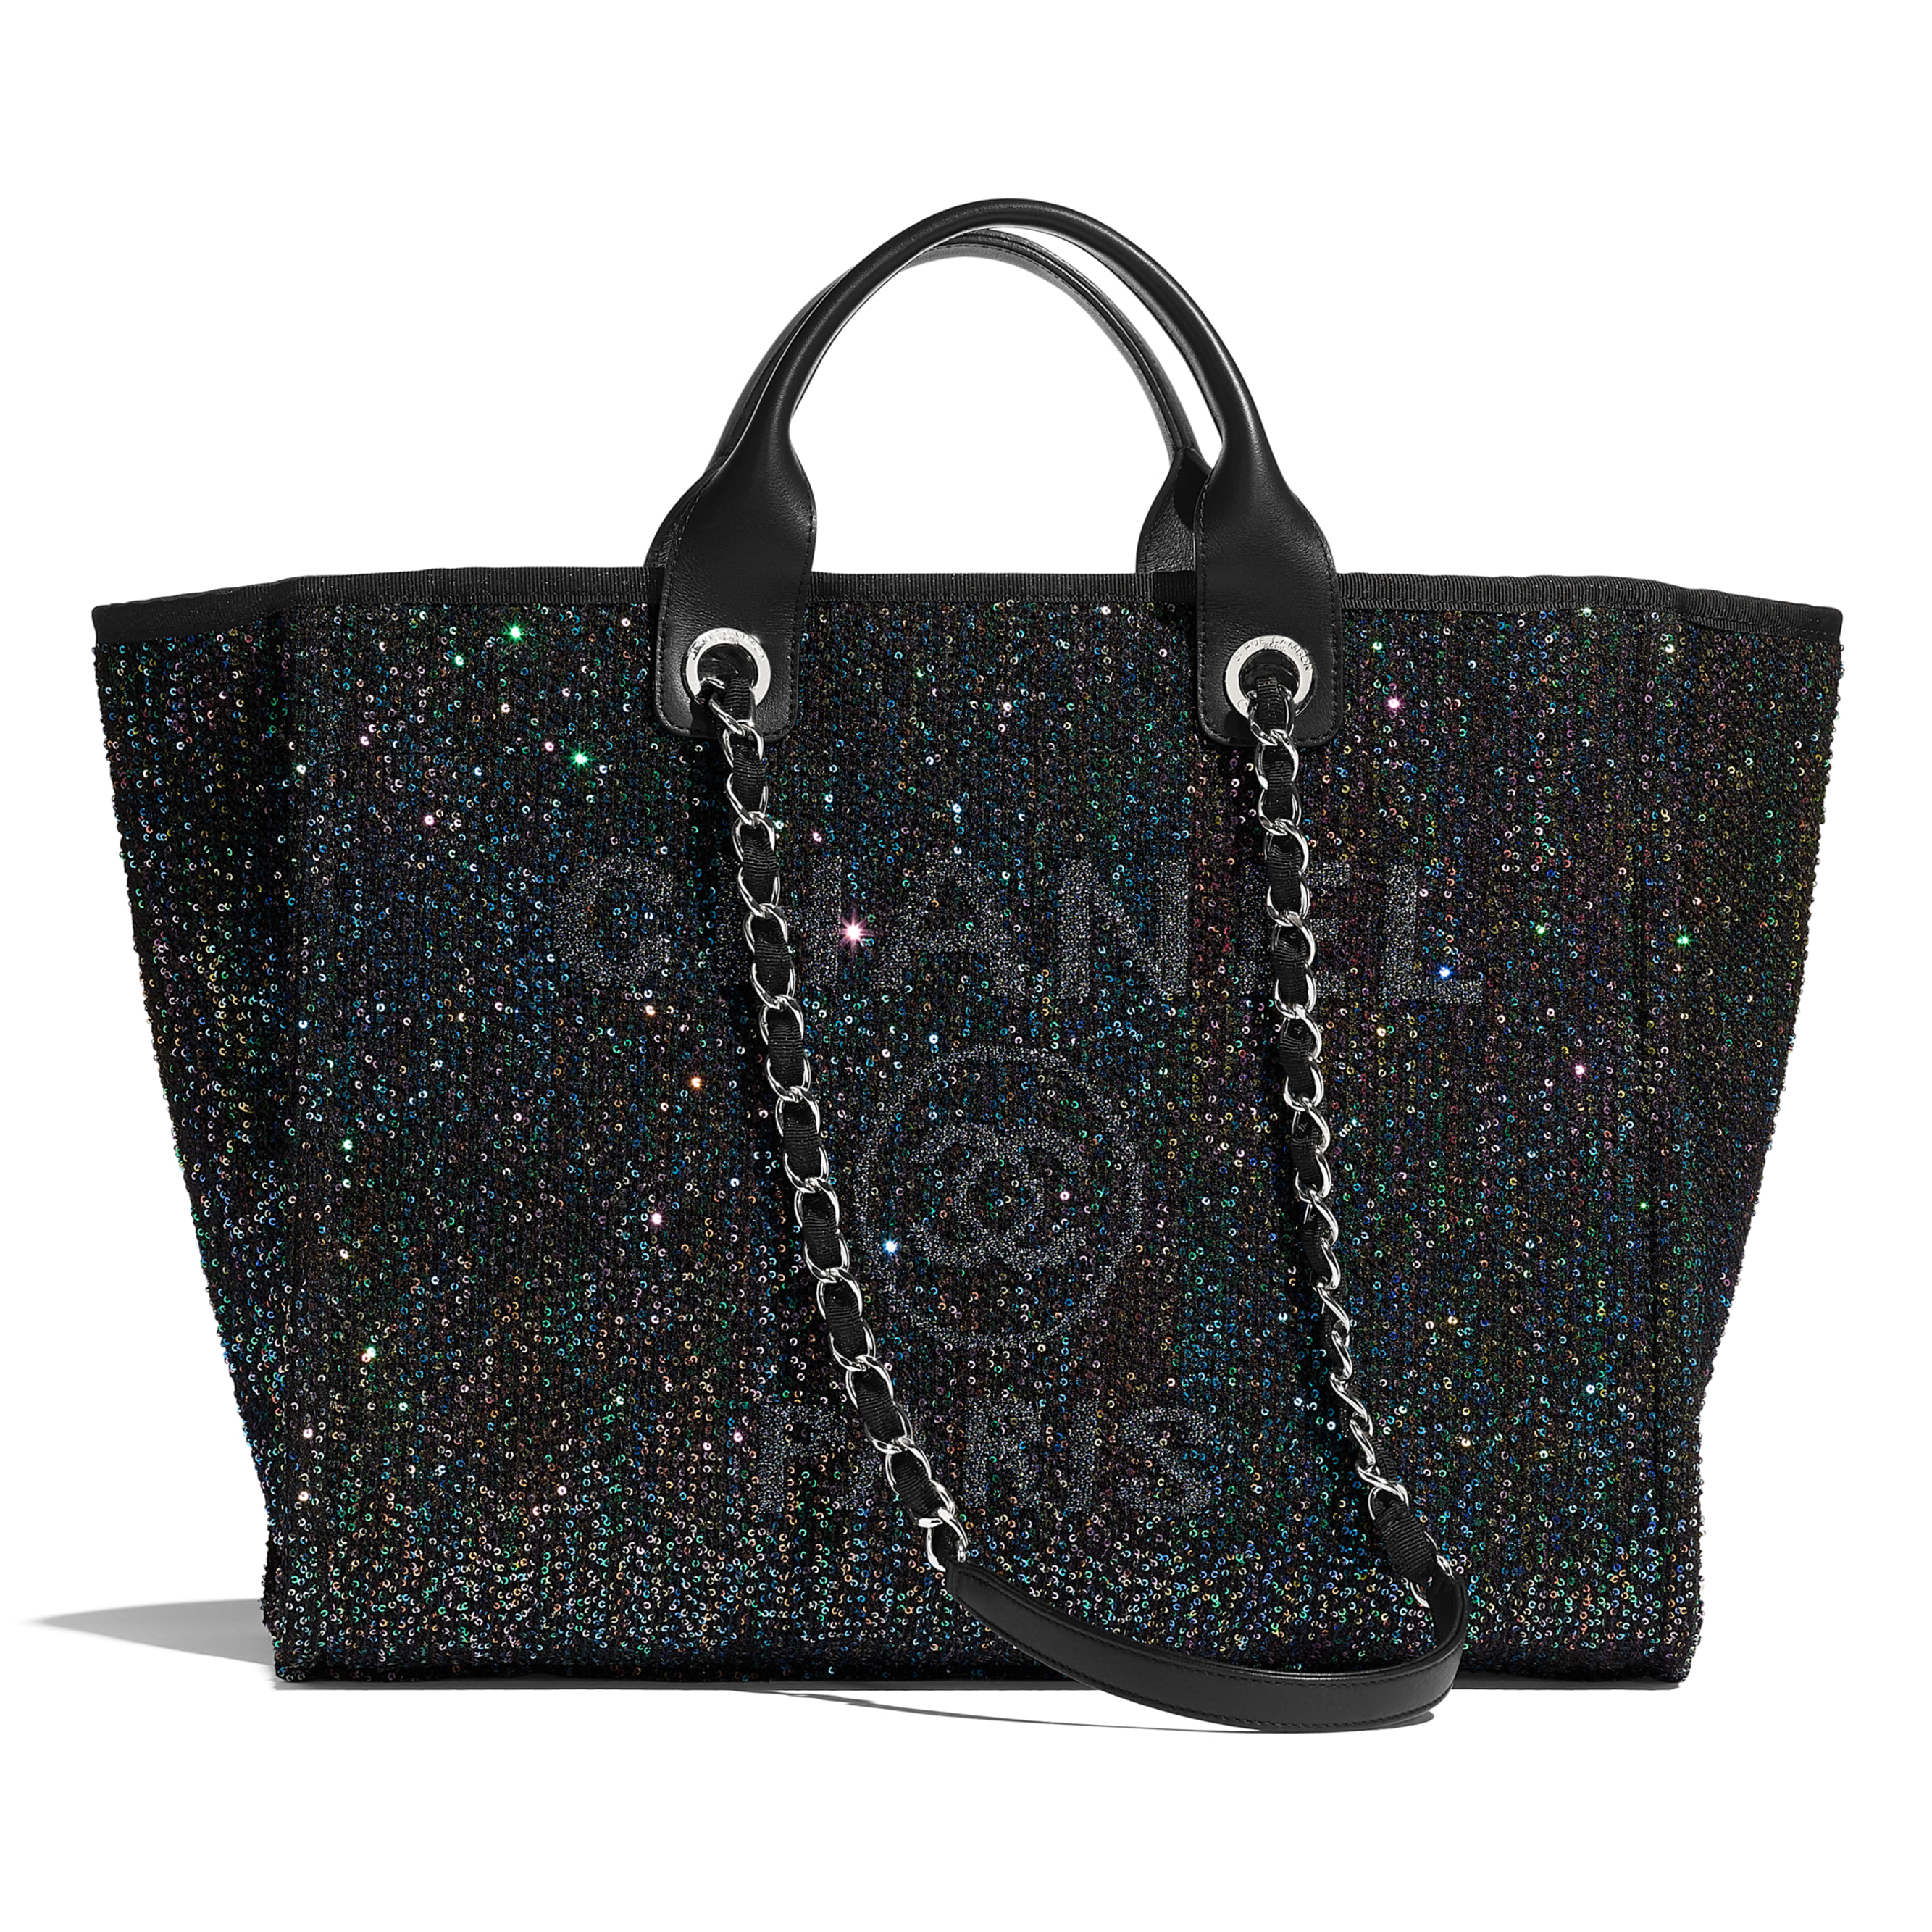 Large Tote - Black - Viscose, Calfskin, Sequins & Silver-Tone Metal - CHANEL - Default view - see standard sized version